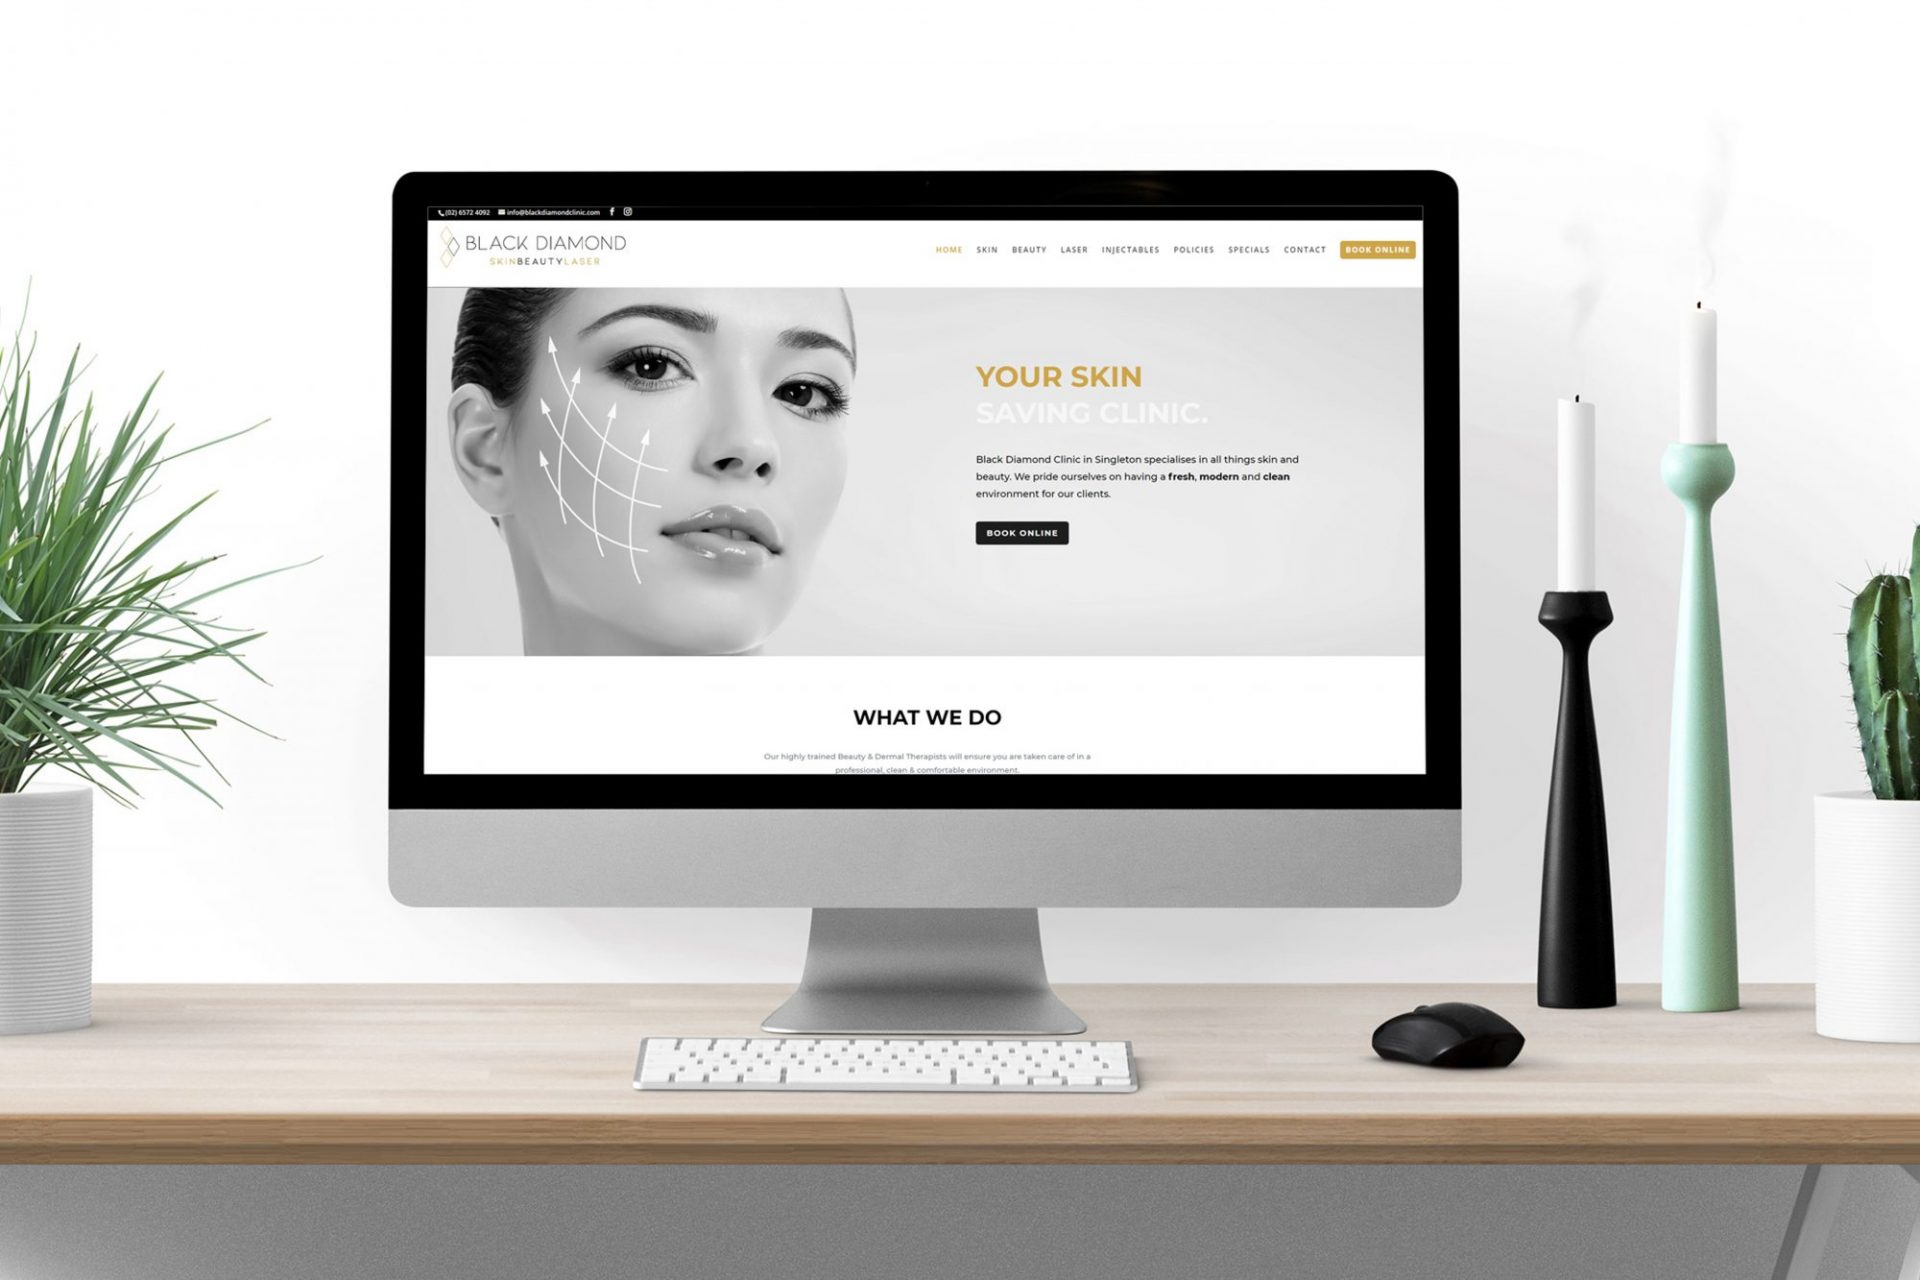 Black-Diamond-Clinic-Website-Design-Shopify-Online-Shop-Camel-Milk-NSW-Muswellbrook-Hunter-Valley-1